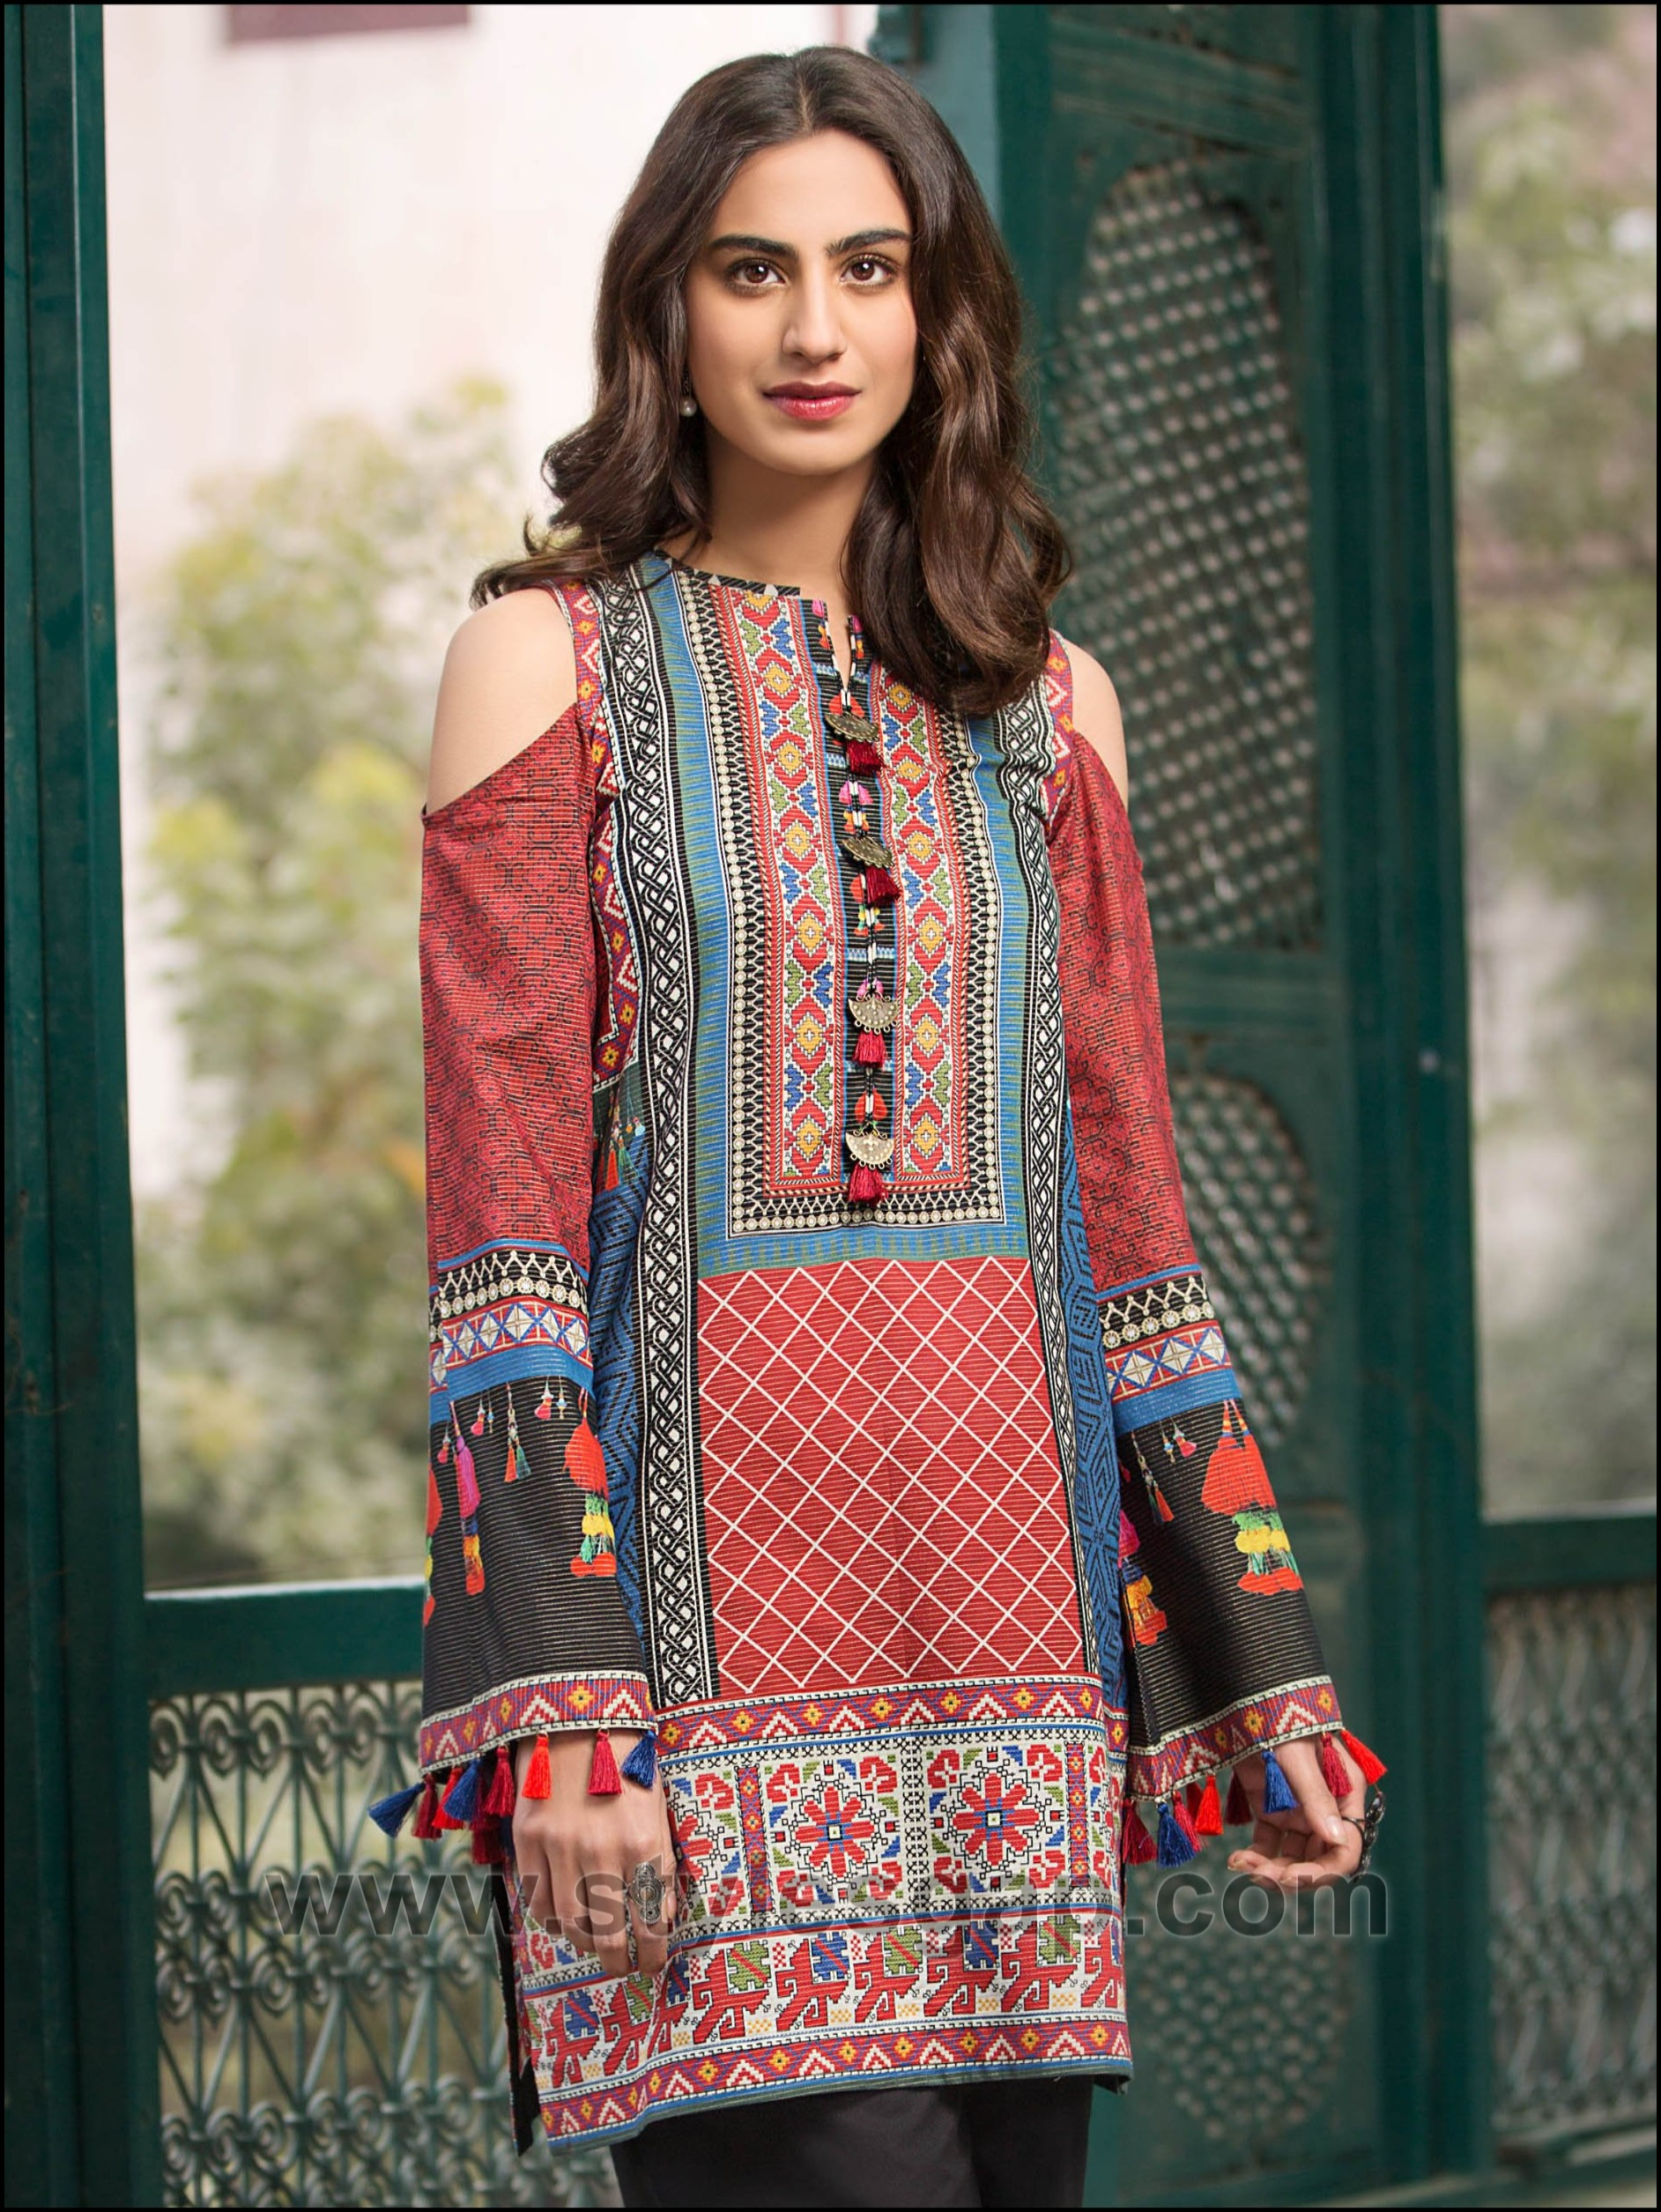 Latest Neck Designs 2019 In Pakistan Latest Pakistani Indian Salwar Kameez Designs Trends Blouses Discover The Latest Best Selling Shop Women S Shirts High Quality Blouses